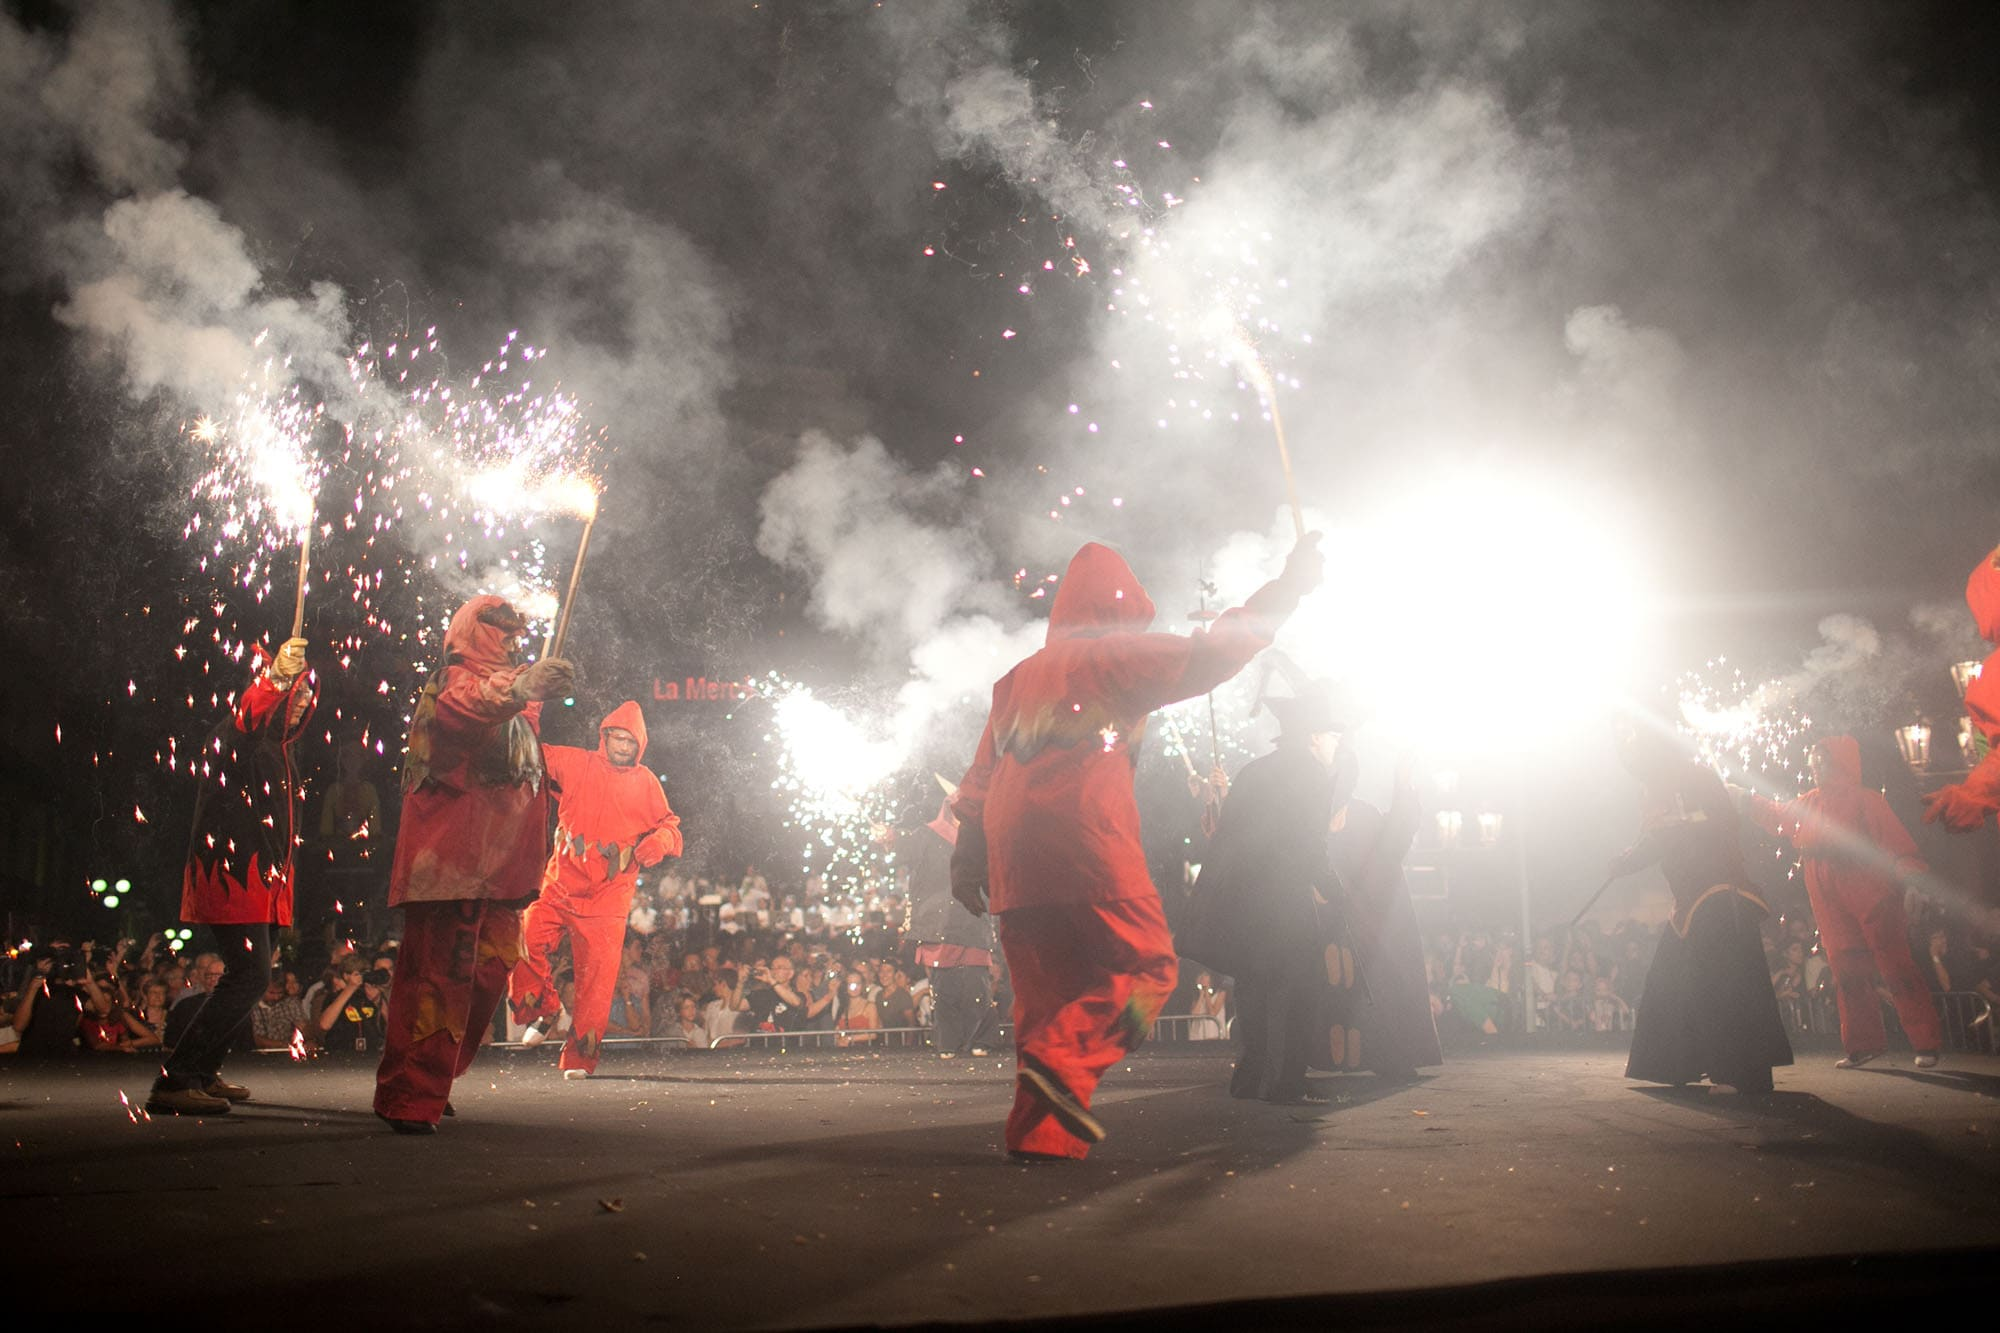 Correfoc at the Opening Ceremony of La Mercè Festival 2011 in Barcelona, Spain